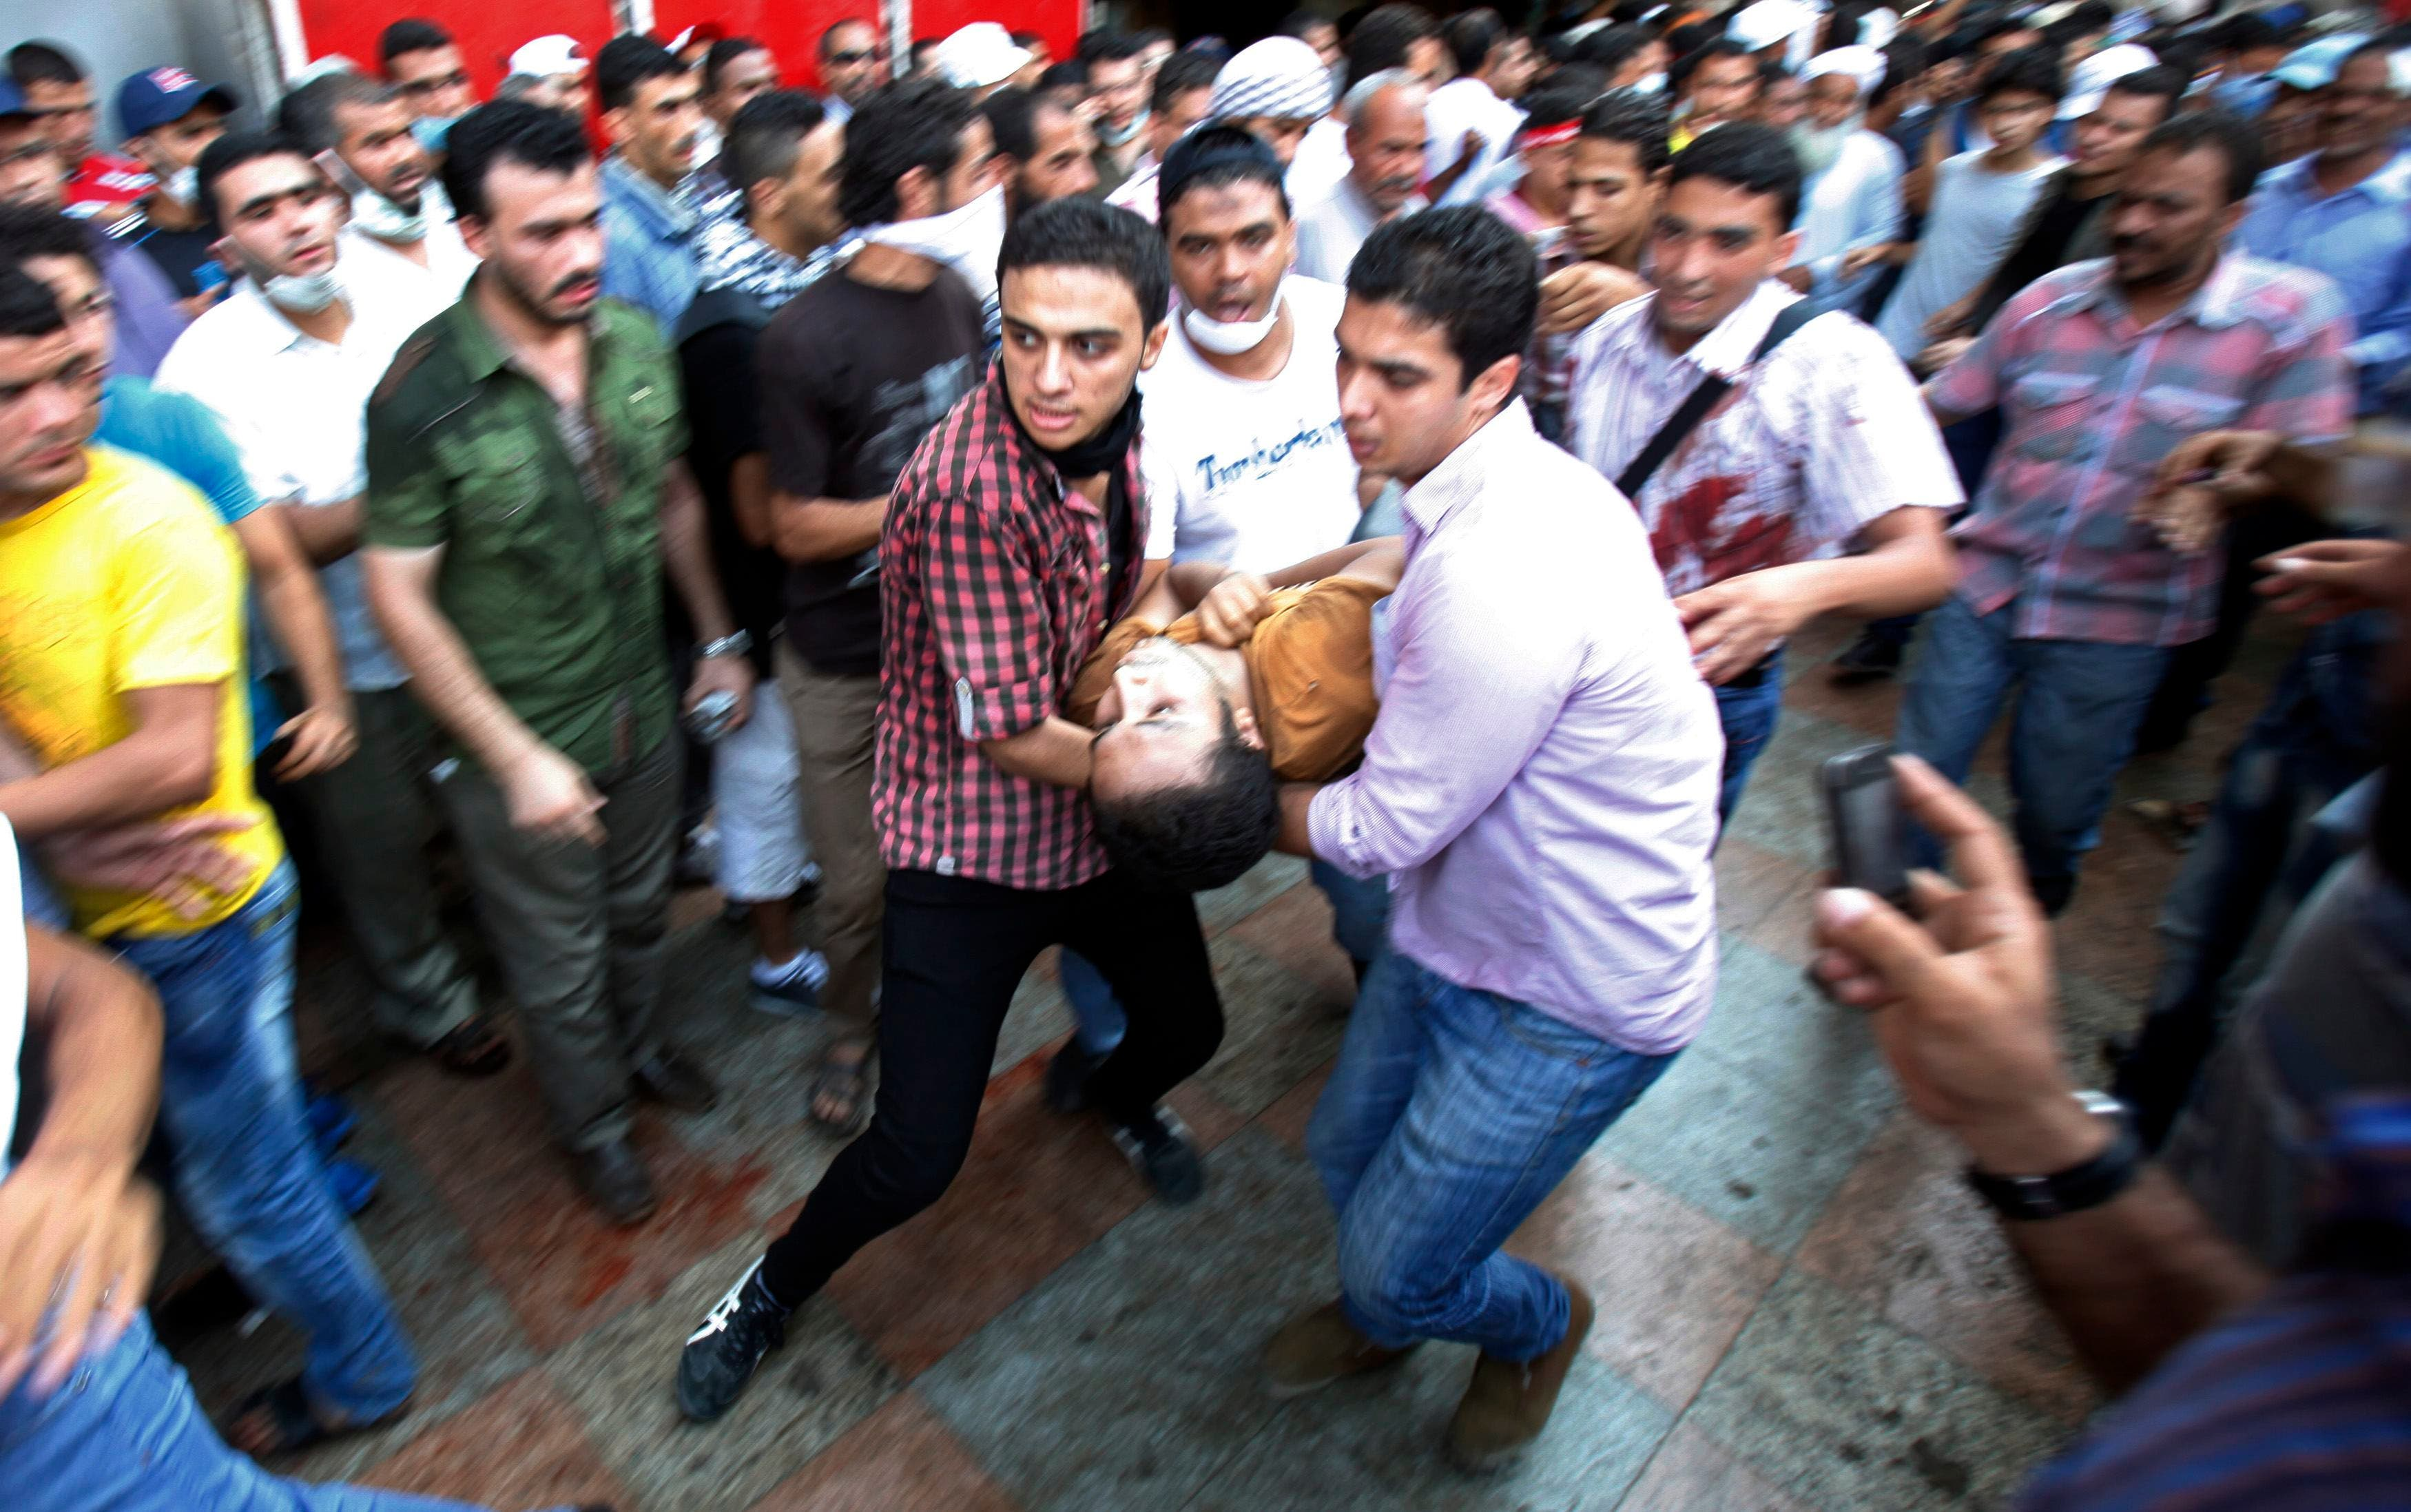 Supporters of deposed Egyptian President Mohamed Mursi carry an injured demonstrator who was shot during clashes in front Azbkya police station at Ramses Square in Cairo, August 16, 2013. (Reuters)